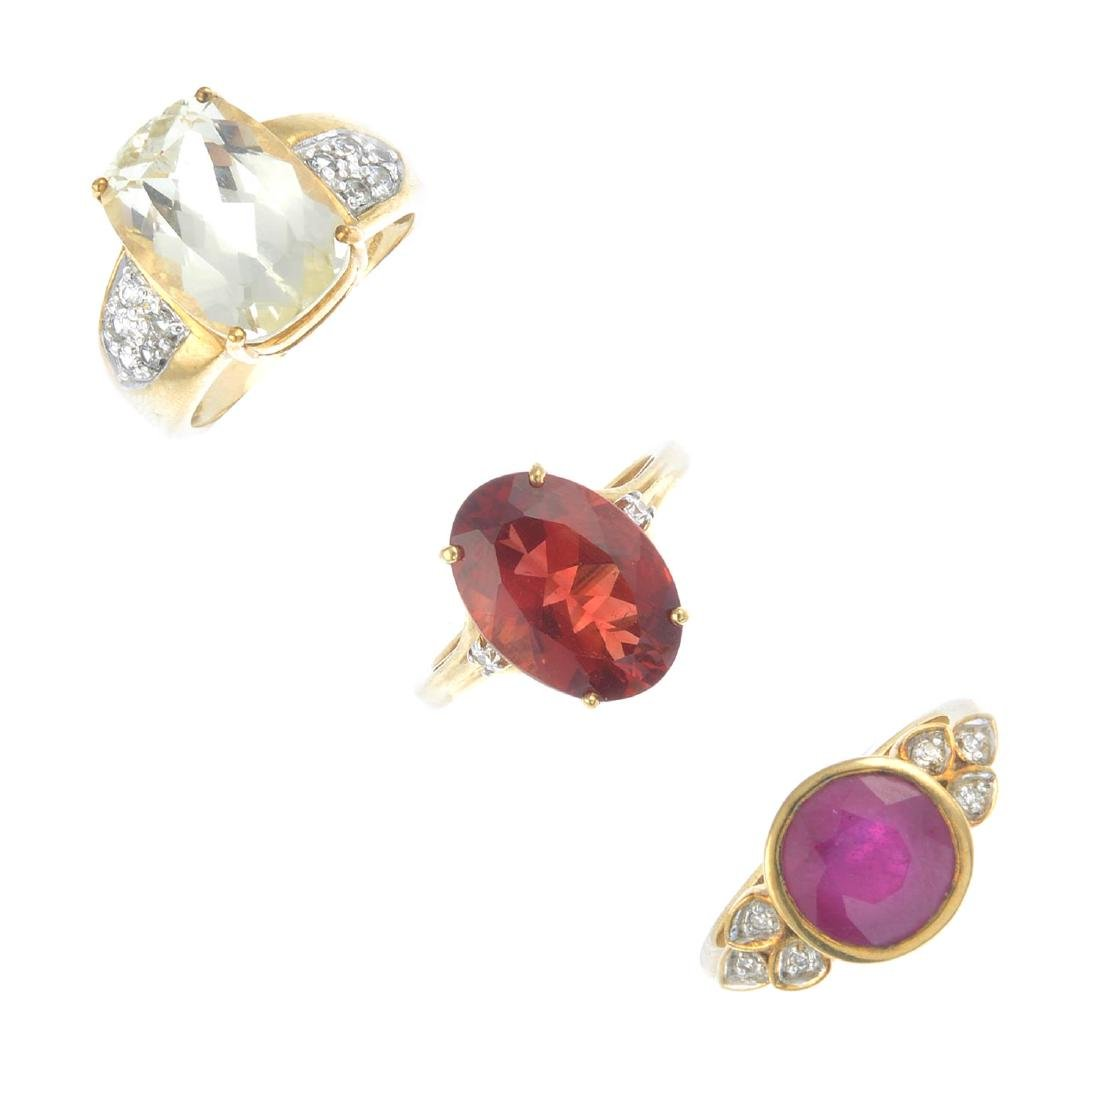 Three 9ct gold gem-set rings. To include a ruby and